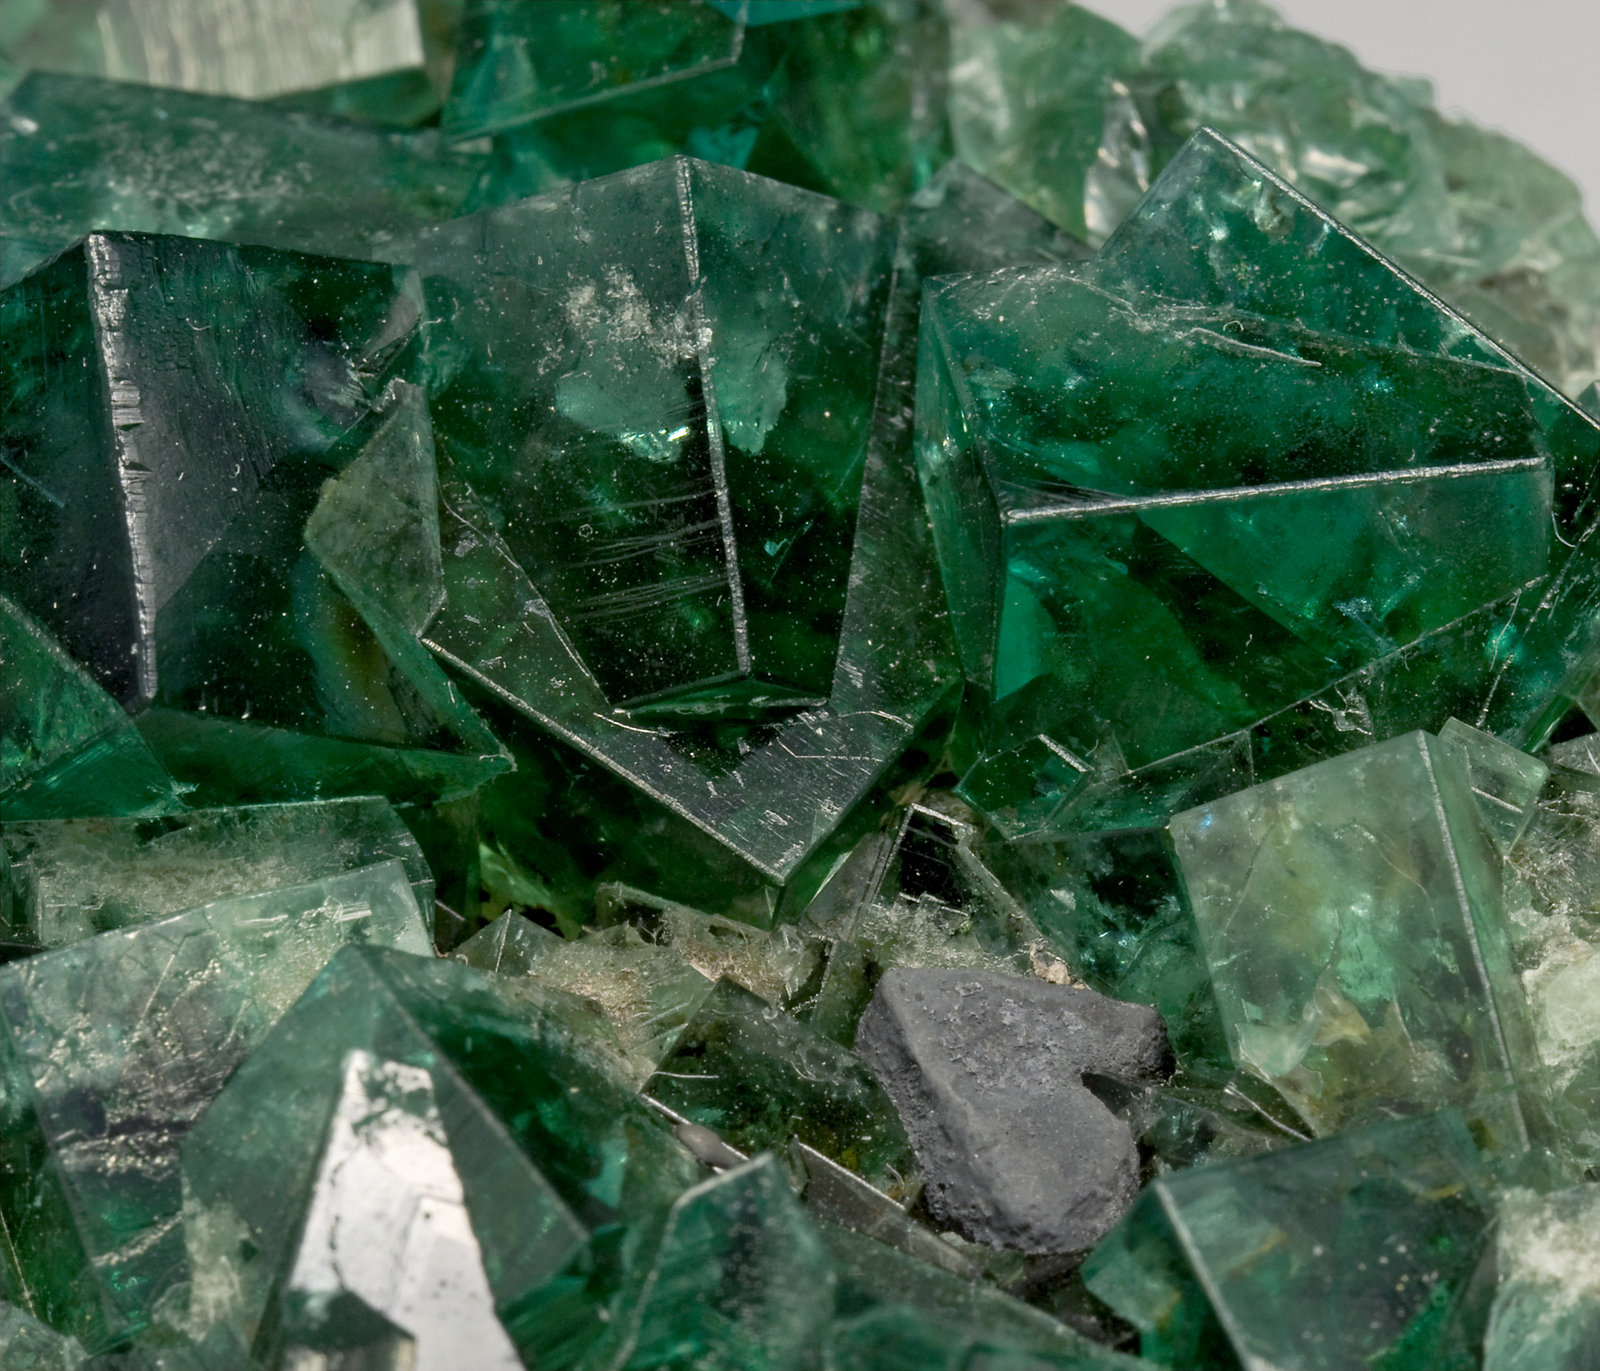 specimens/s_imagesT1/Fluorite-MX68T1d.jpg